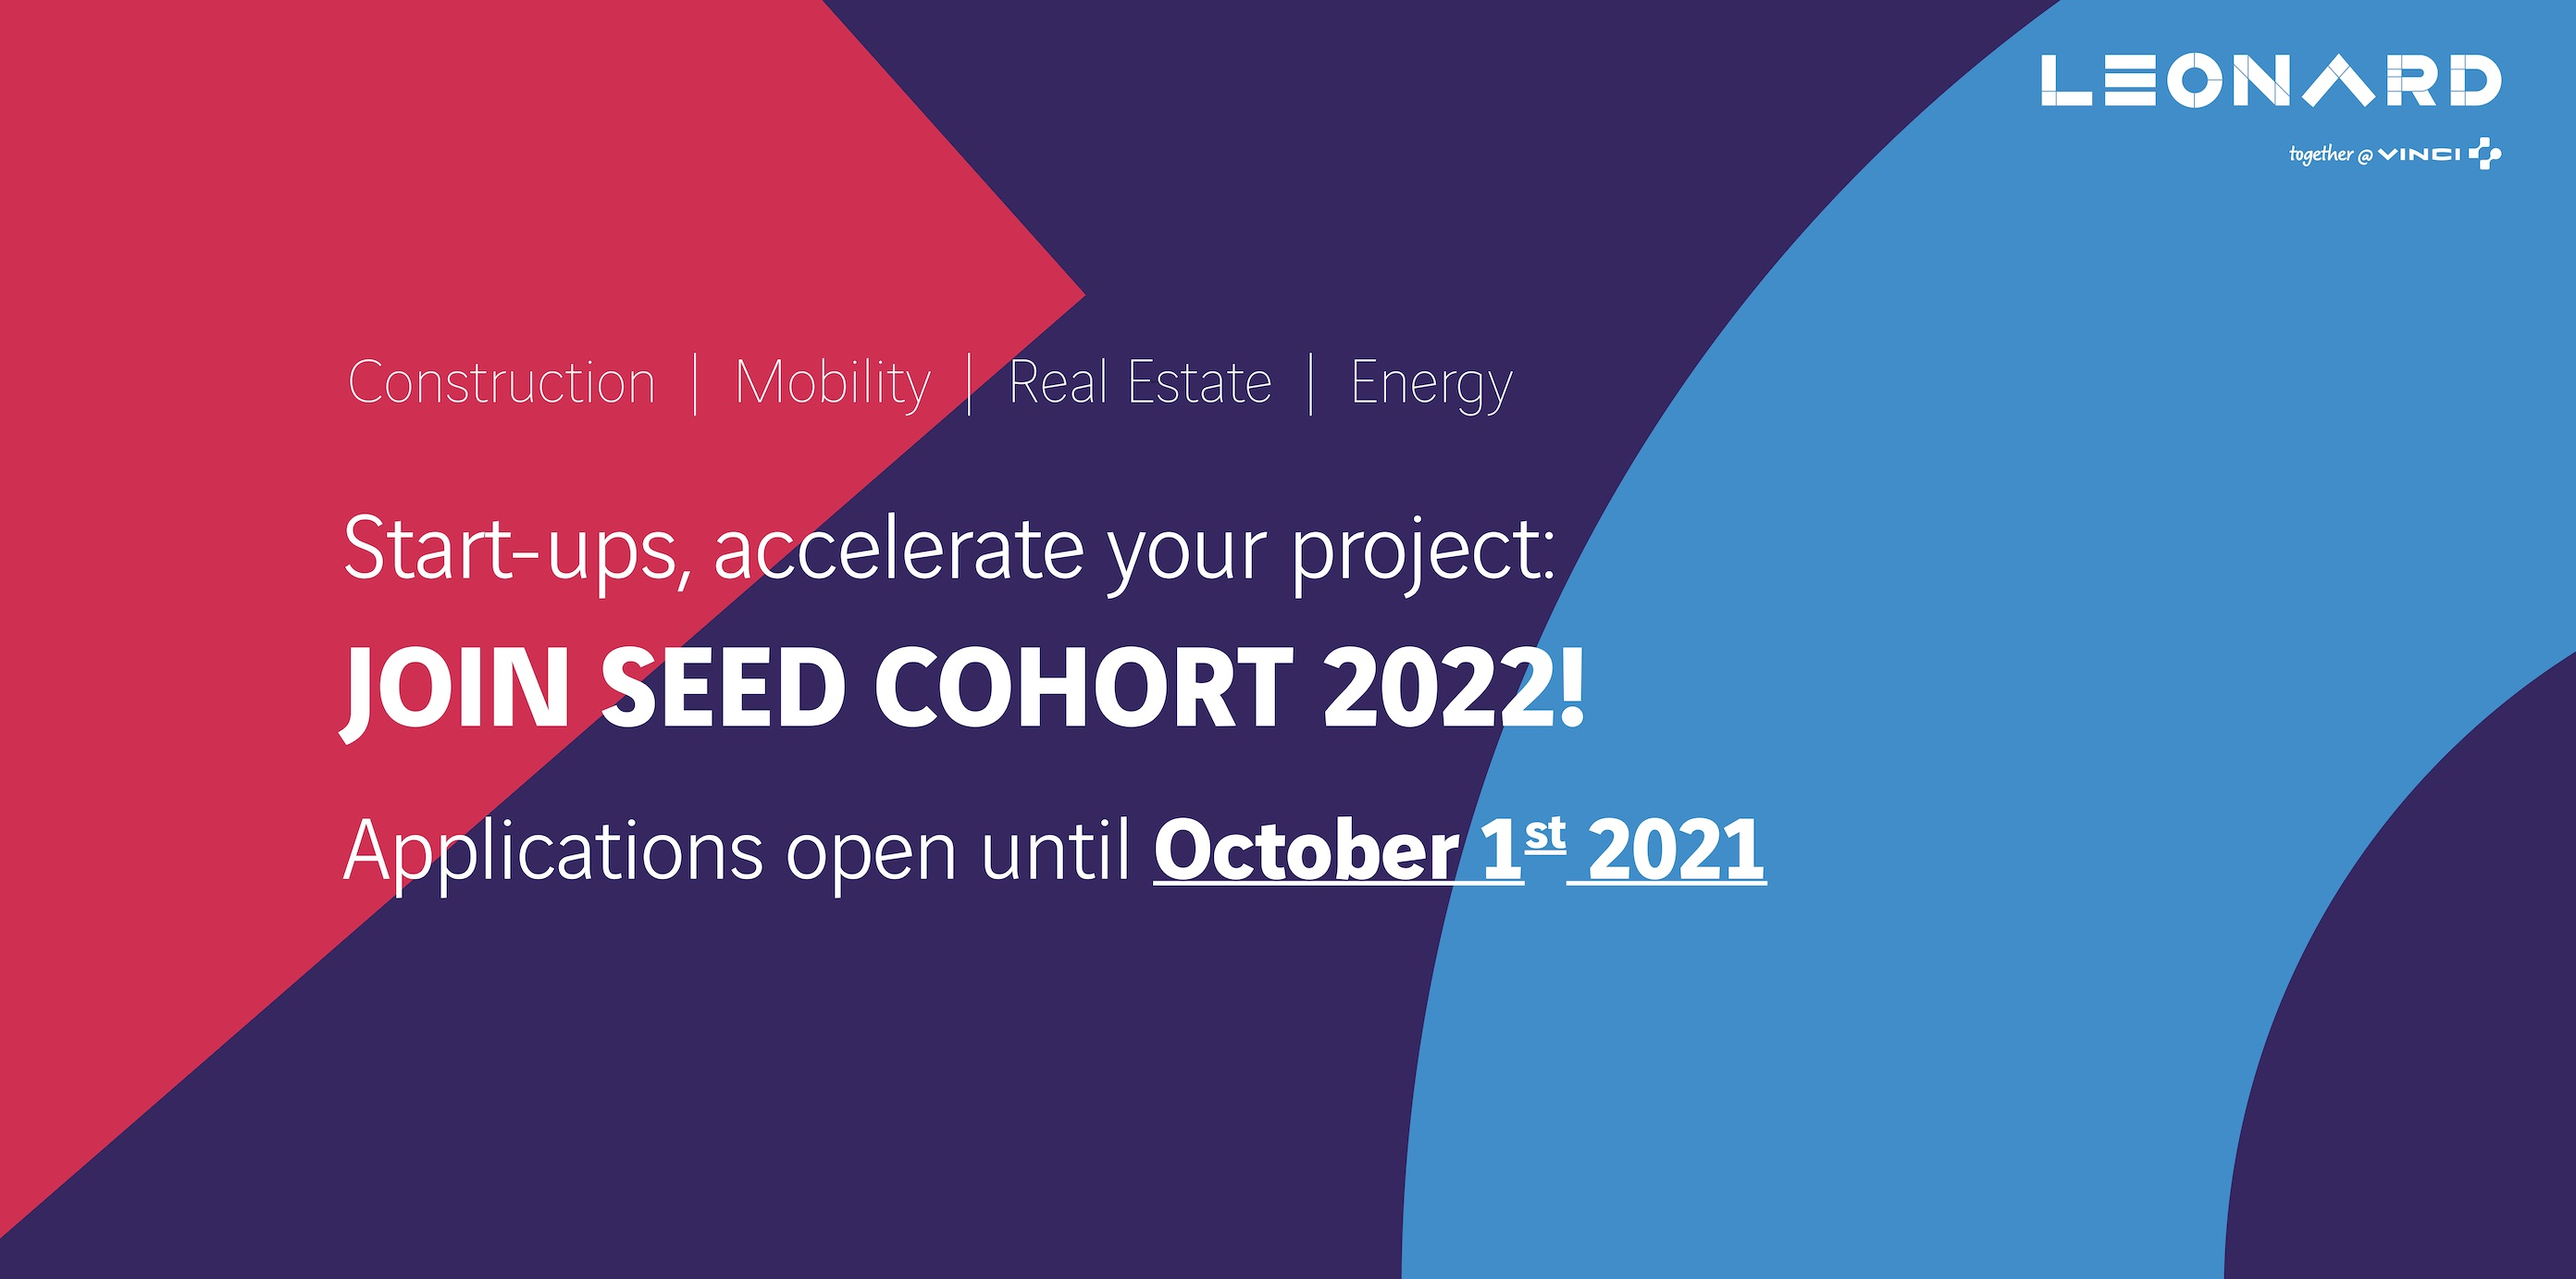 Start-up: Leonard opens applications for its SEED acceleration program for 2022